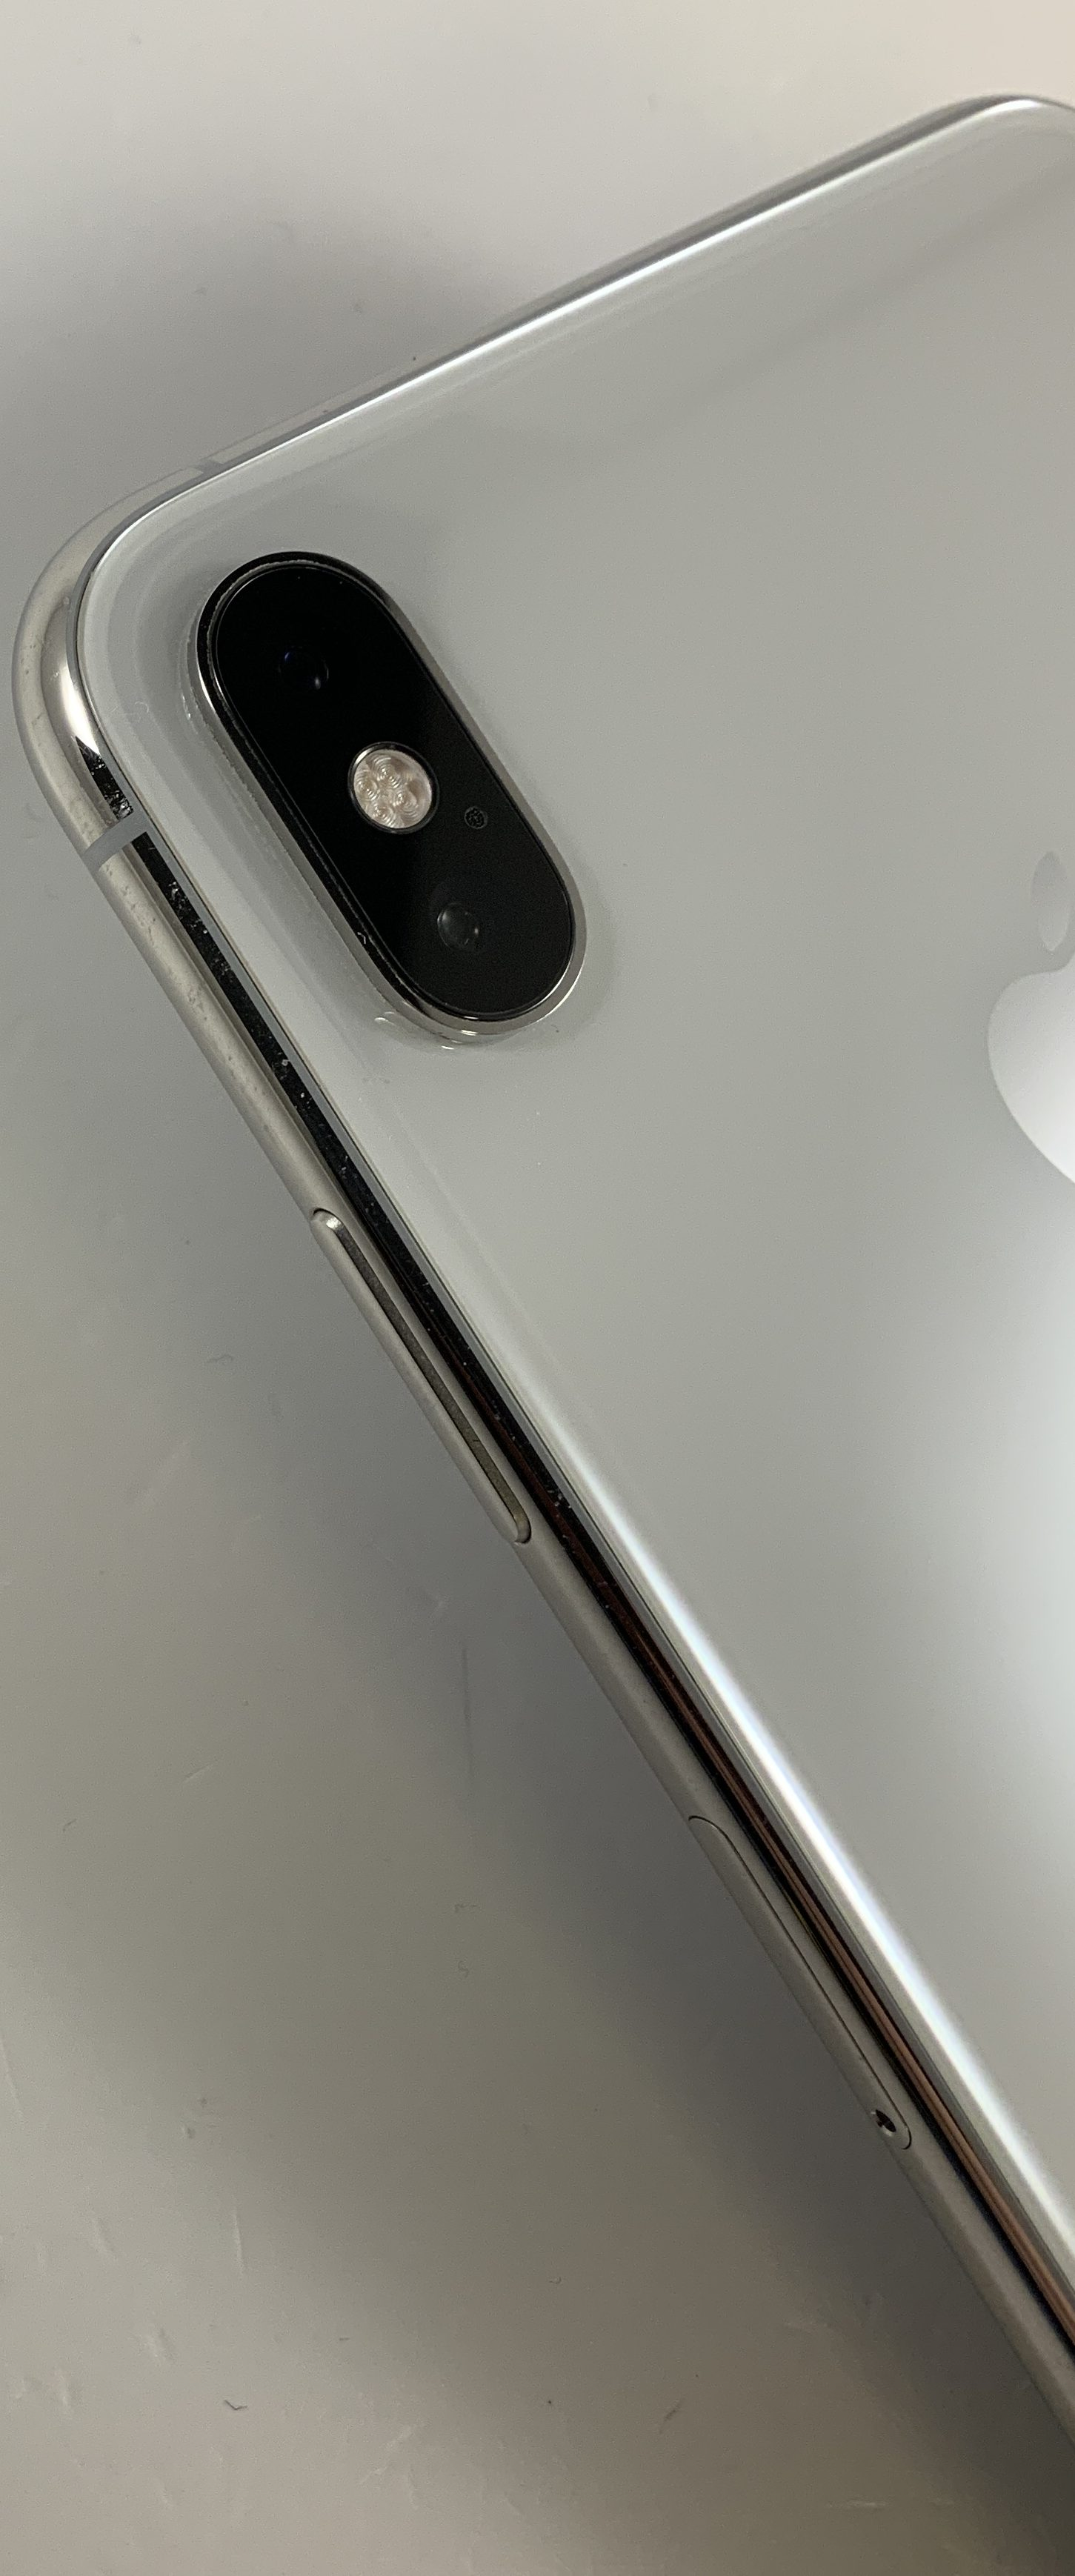 iPhone XS Max 256GB, 256GB, Silver, immagine 4